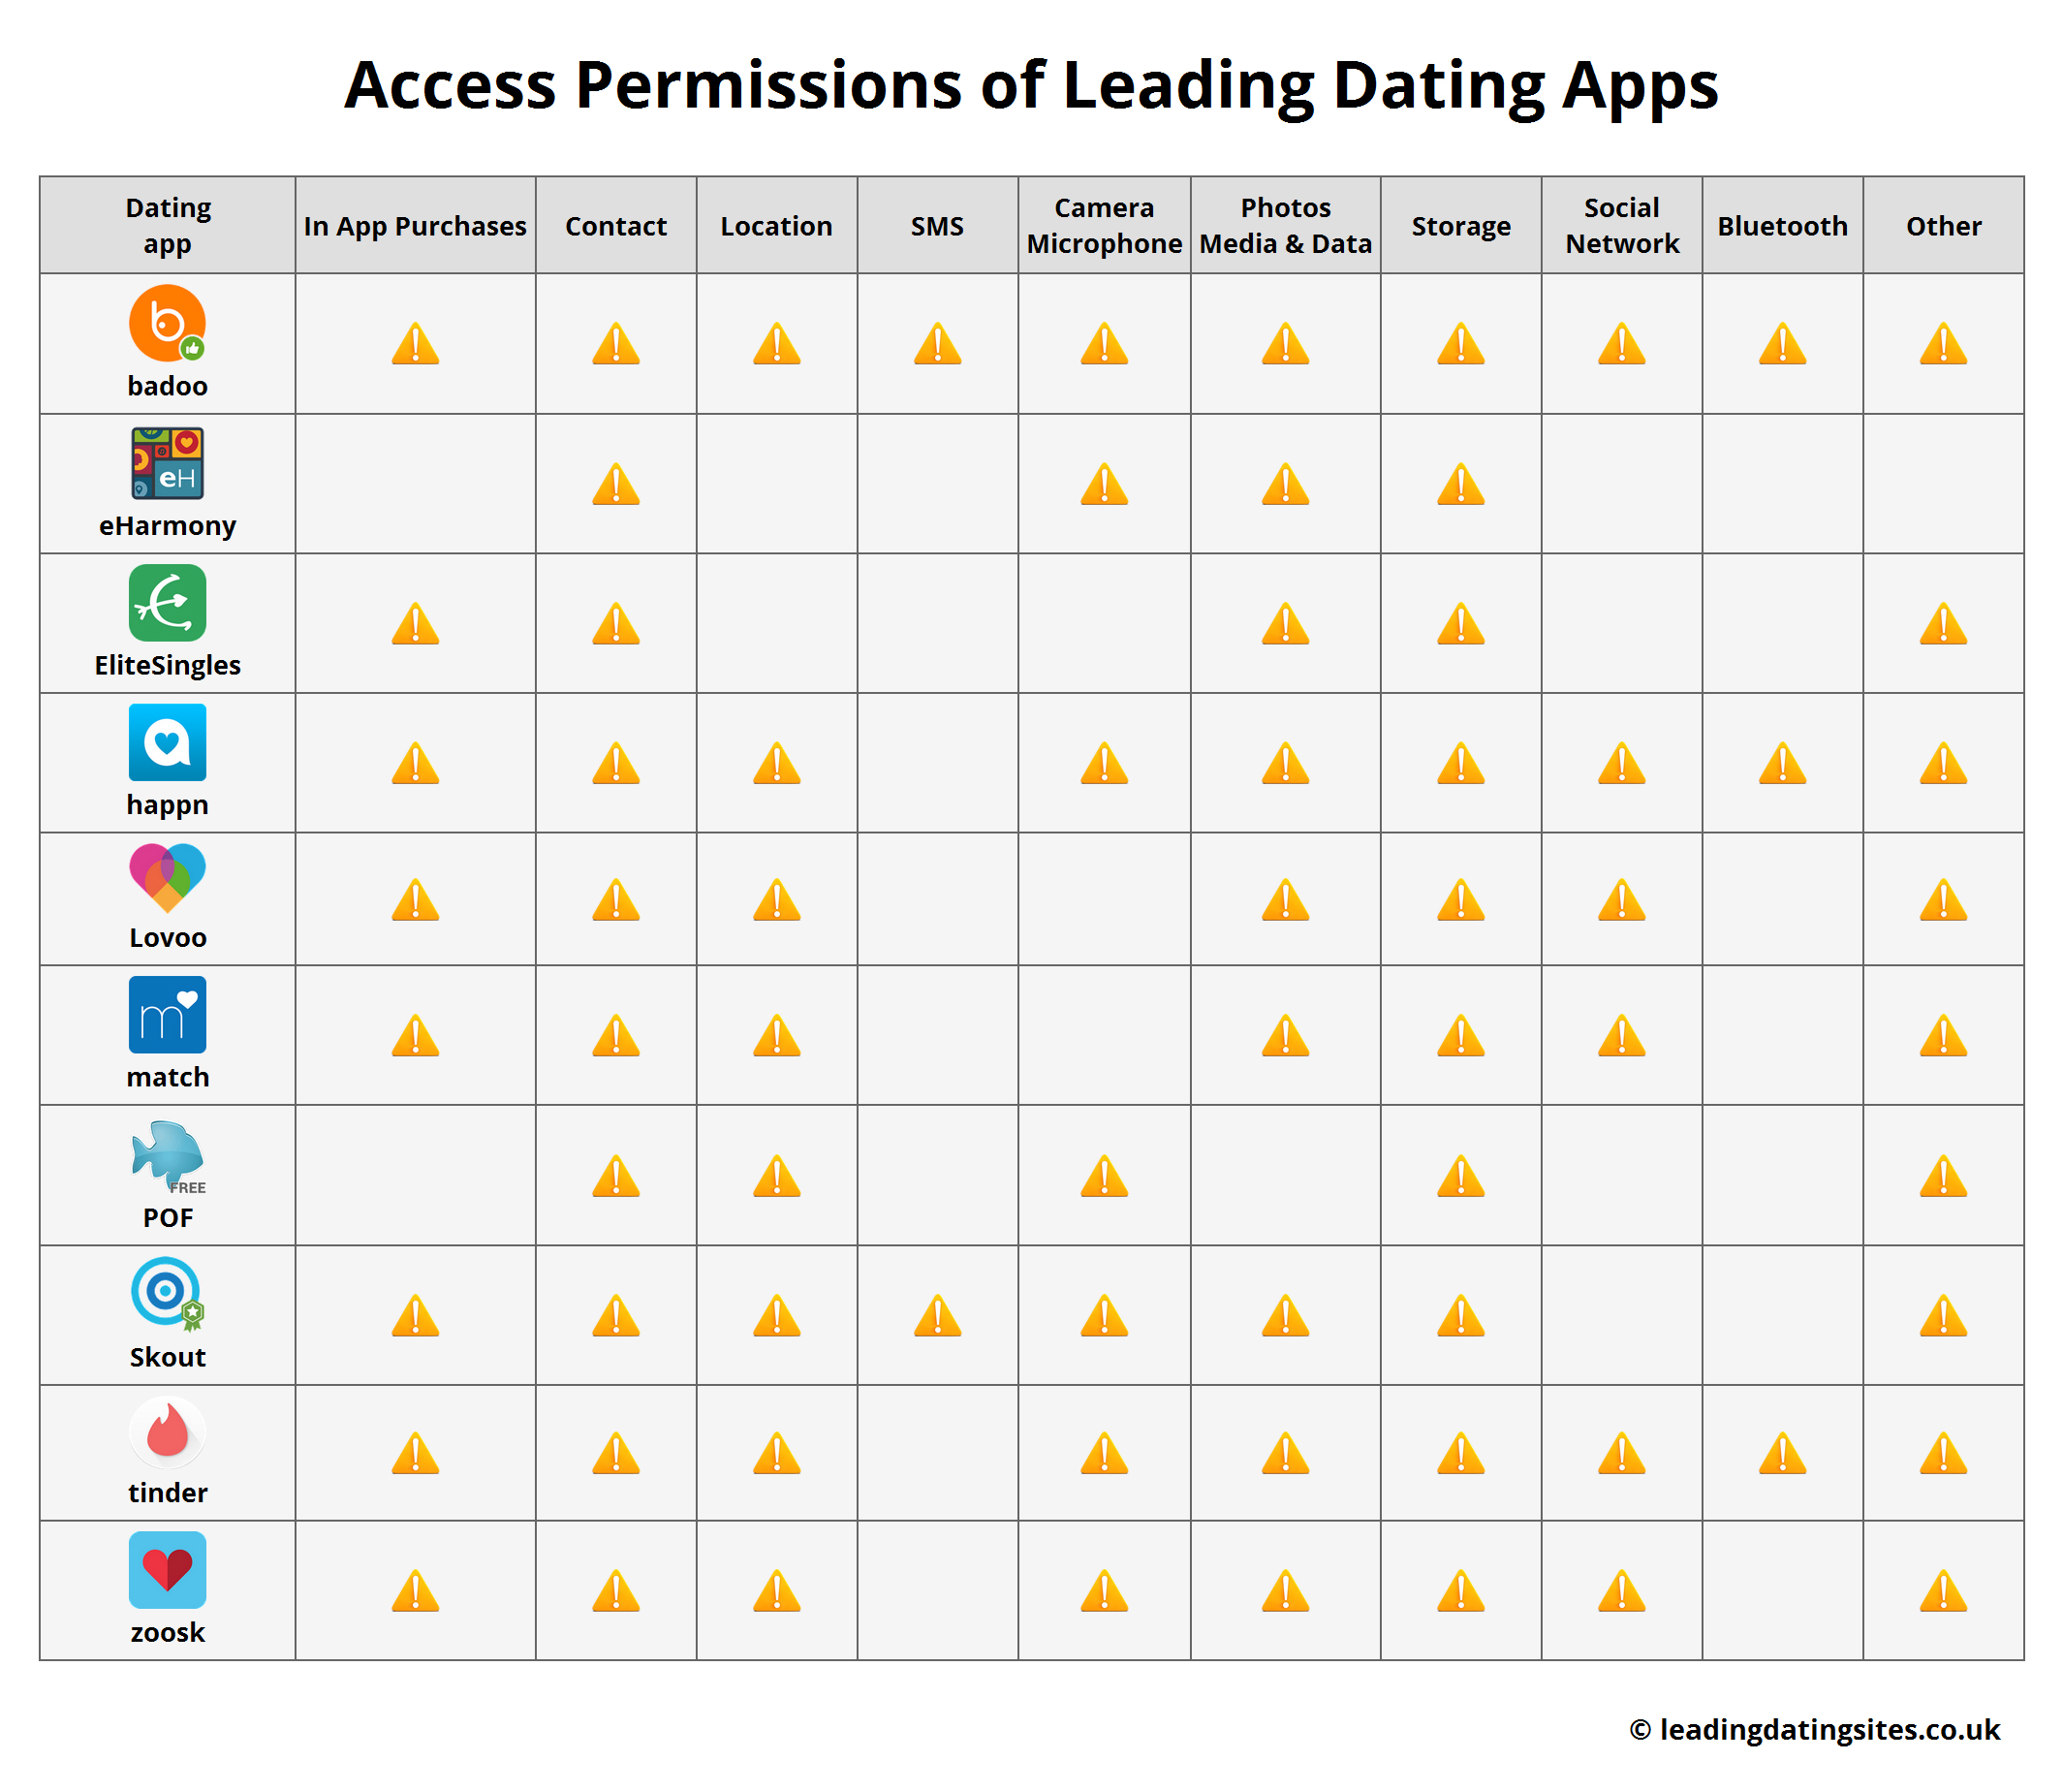 What needs to be done about dating apps